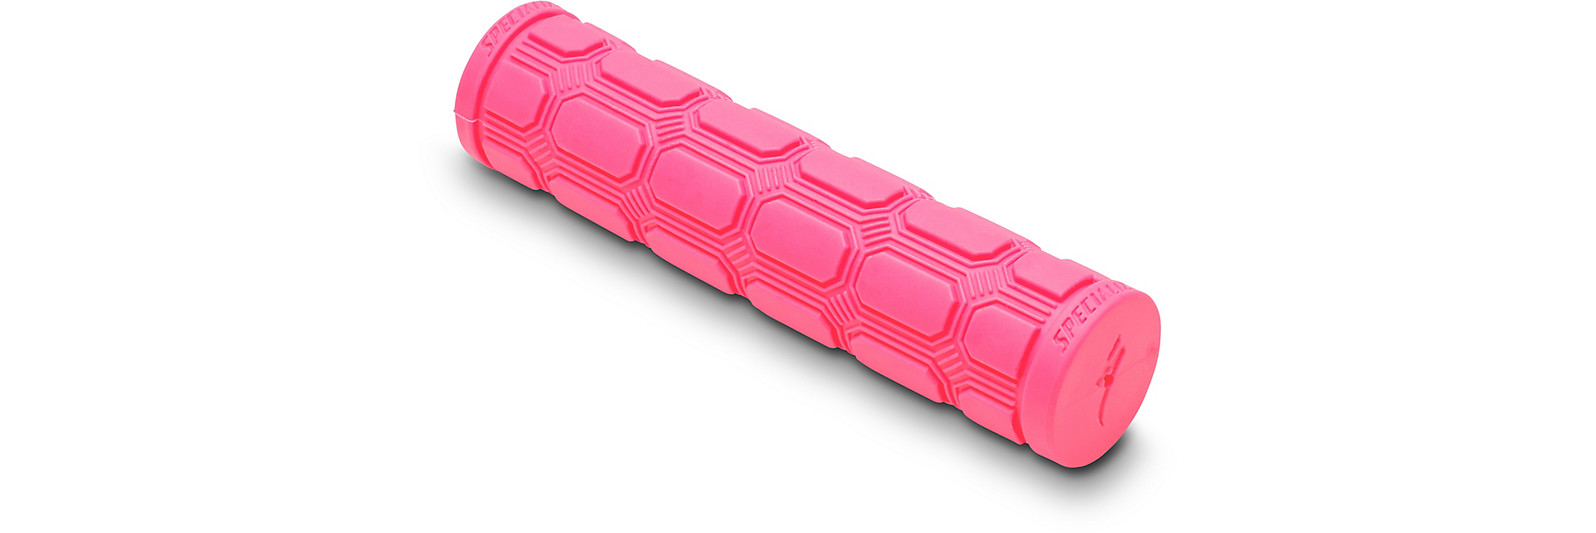 Specialized Enduro Grips Acid Pink